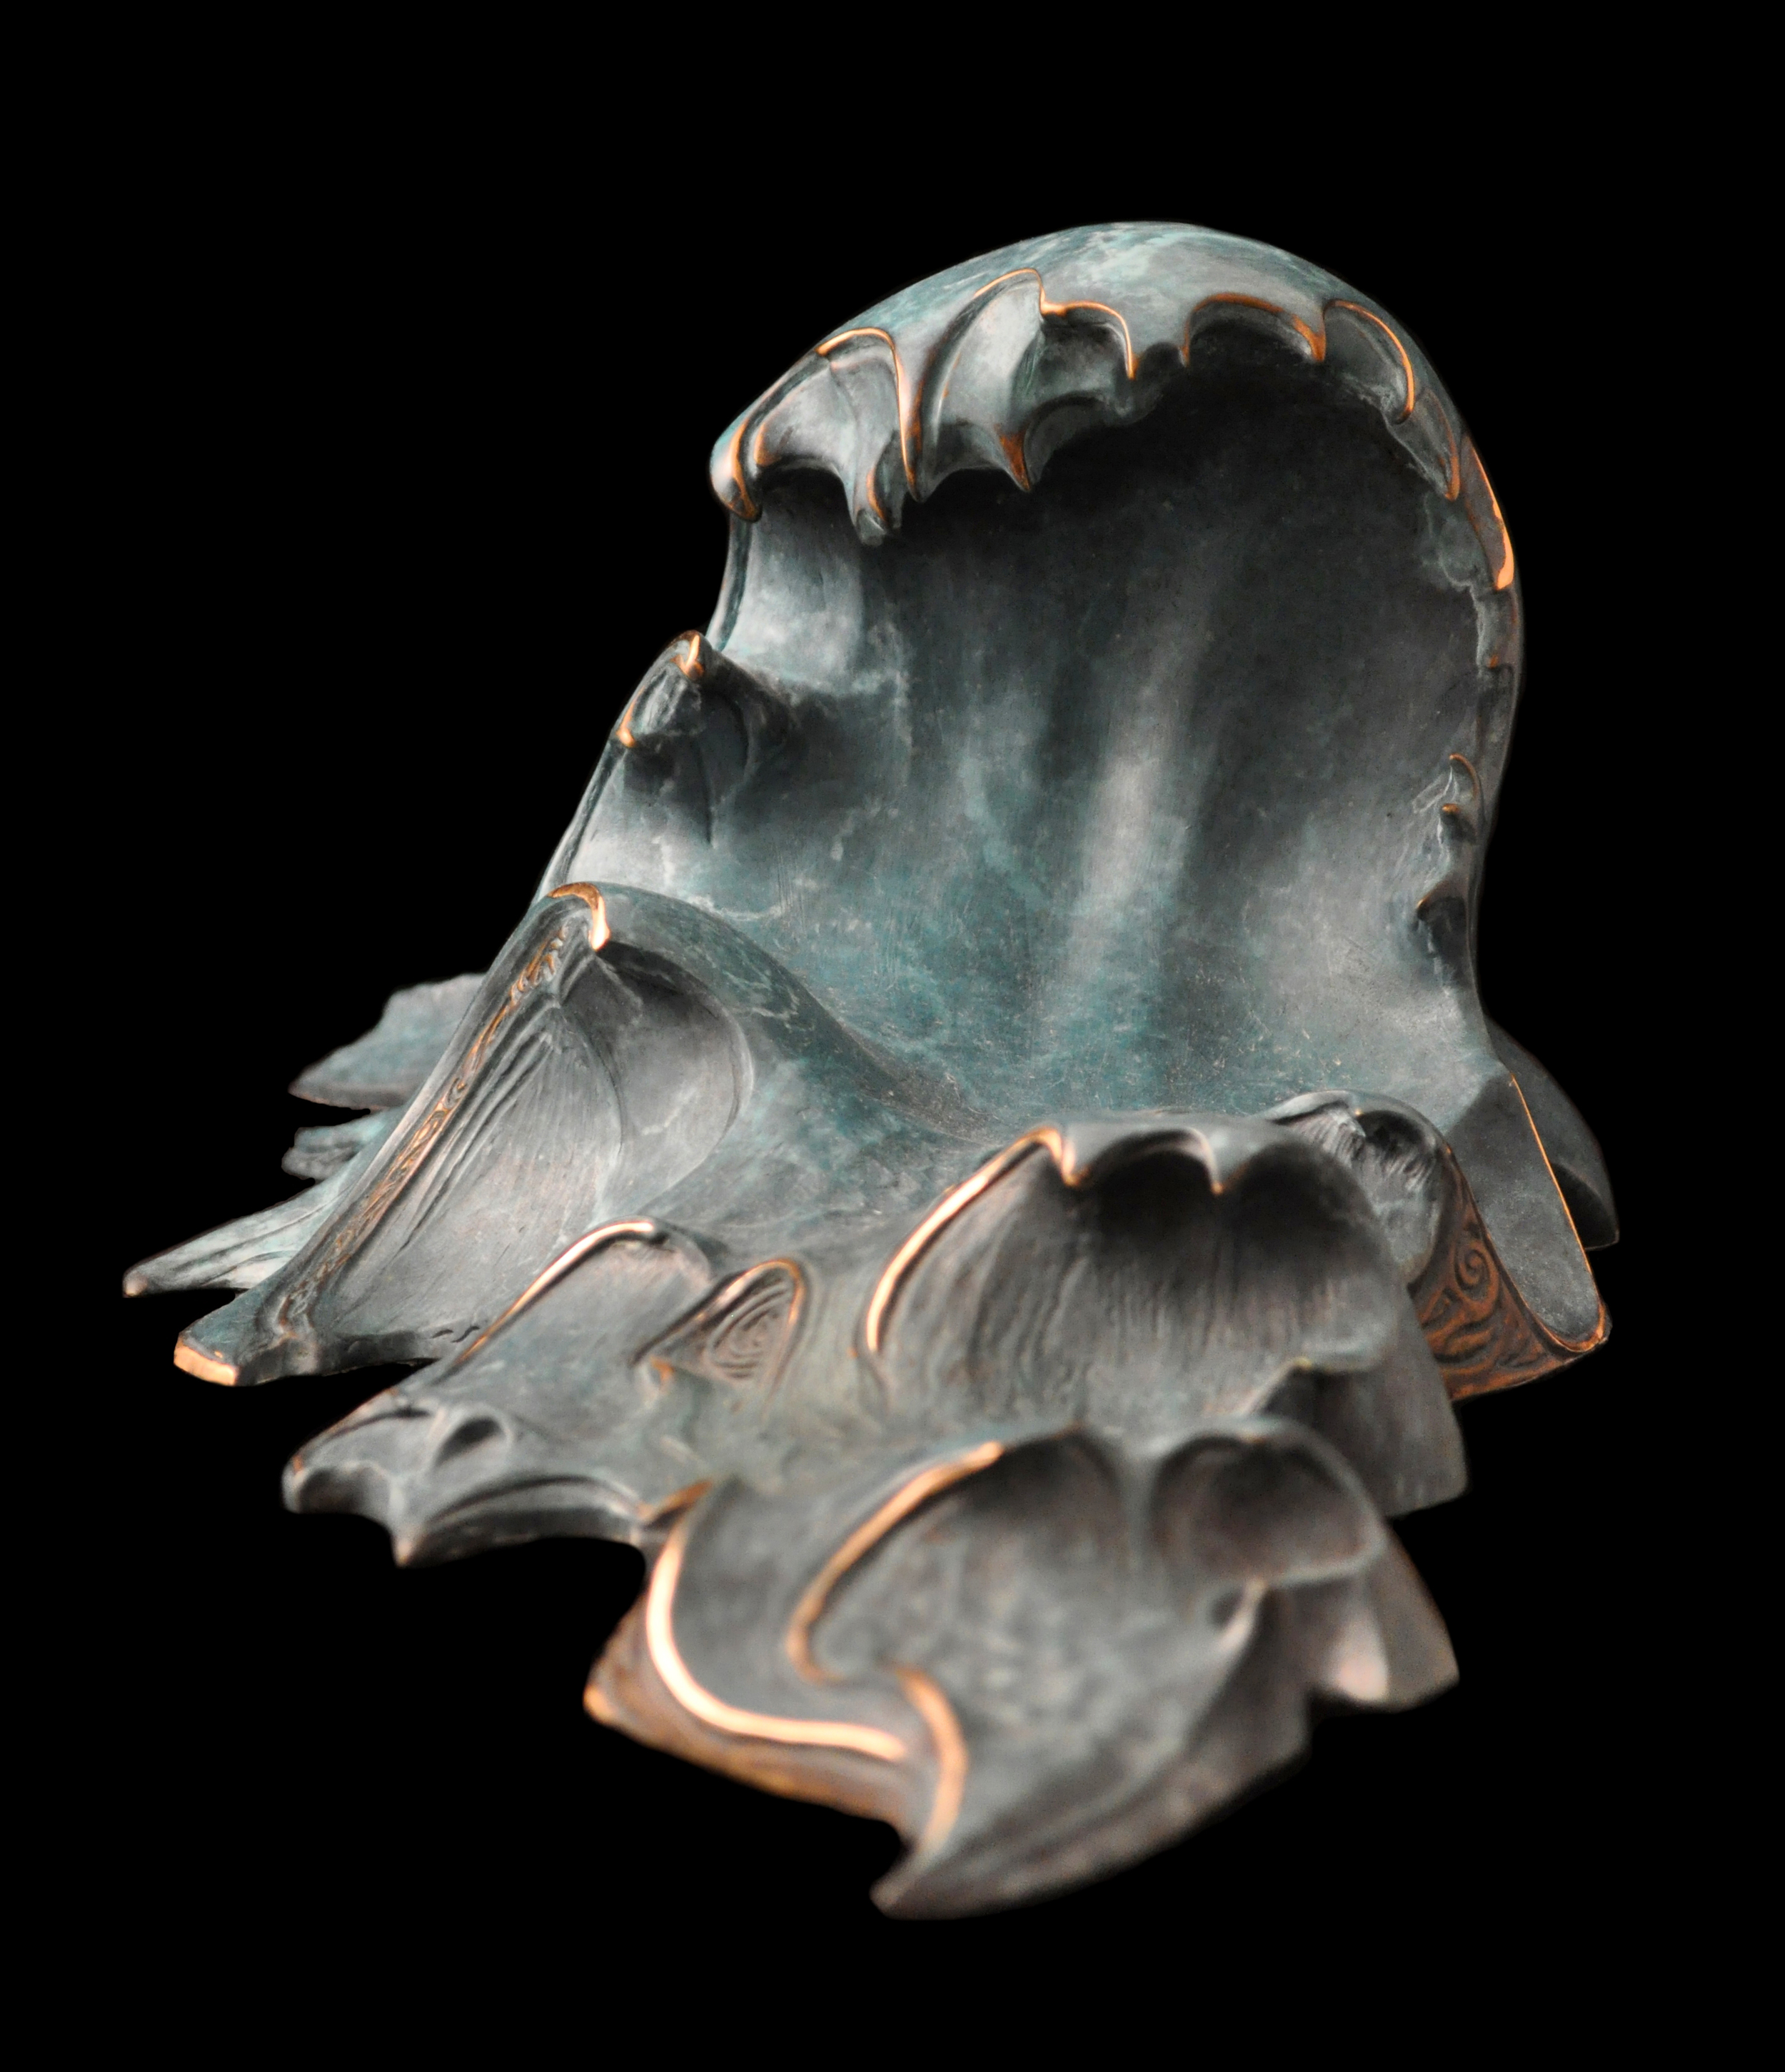 bronze-wave-sculpture-john-maisano-9.jpg